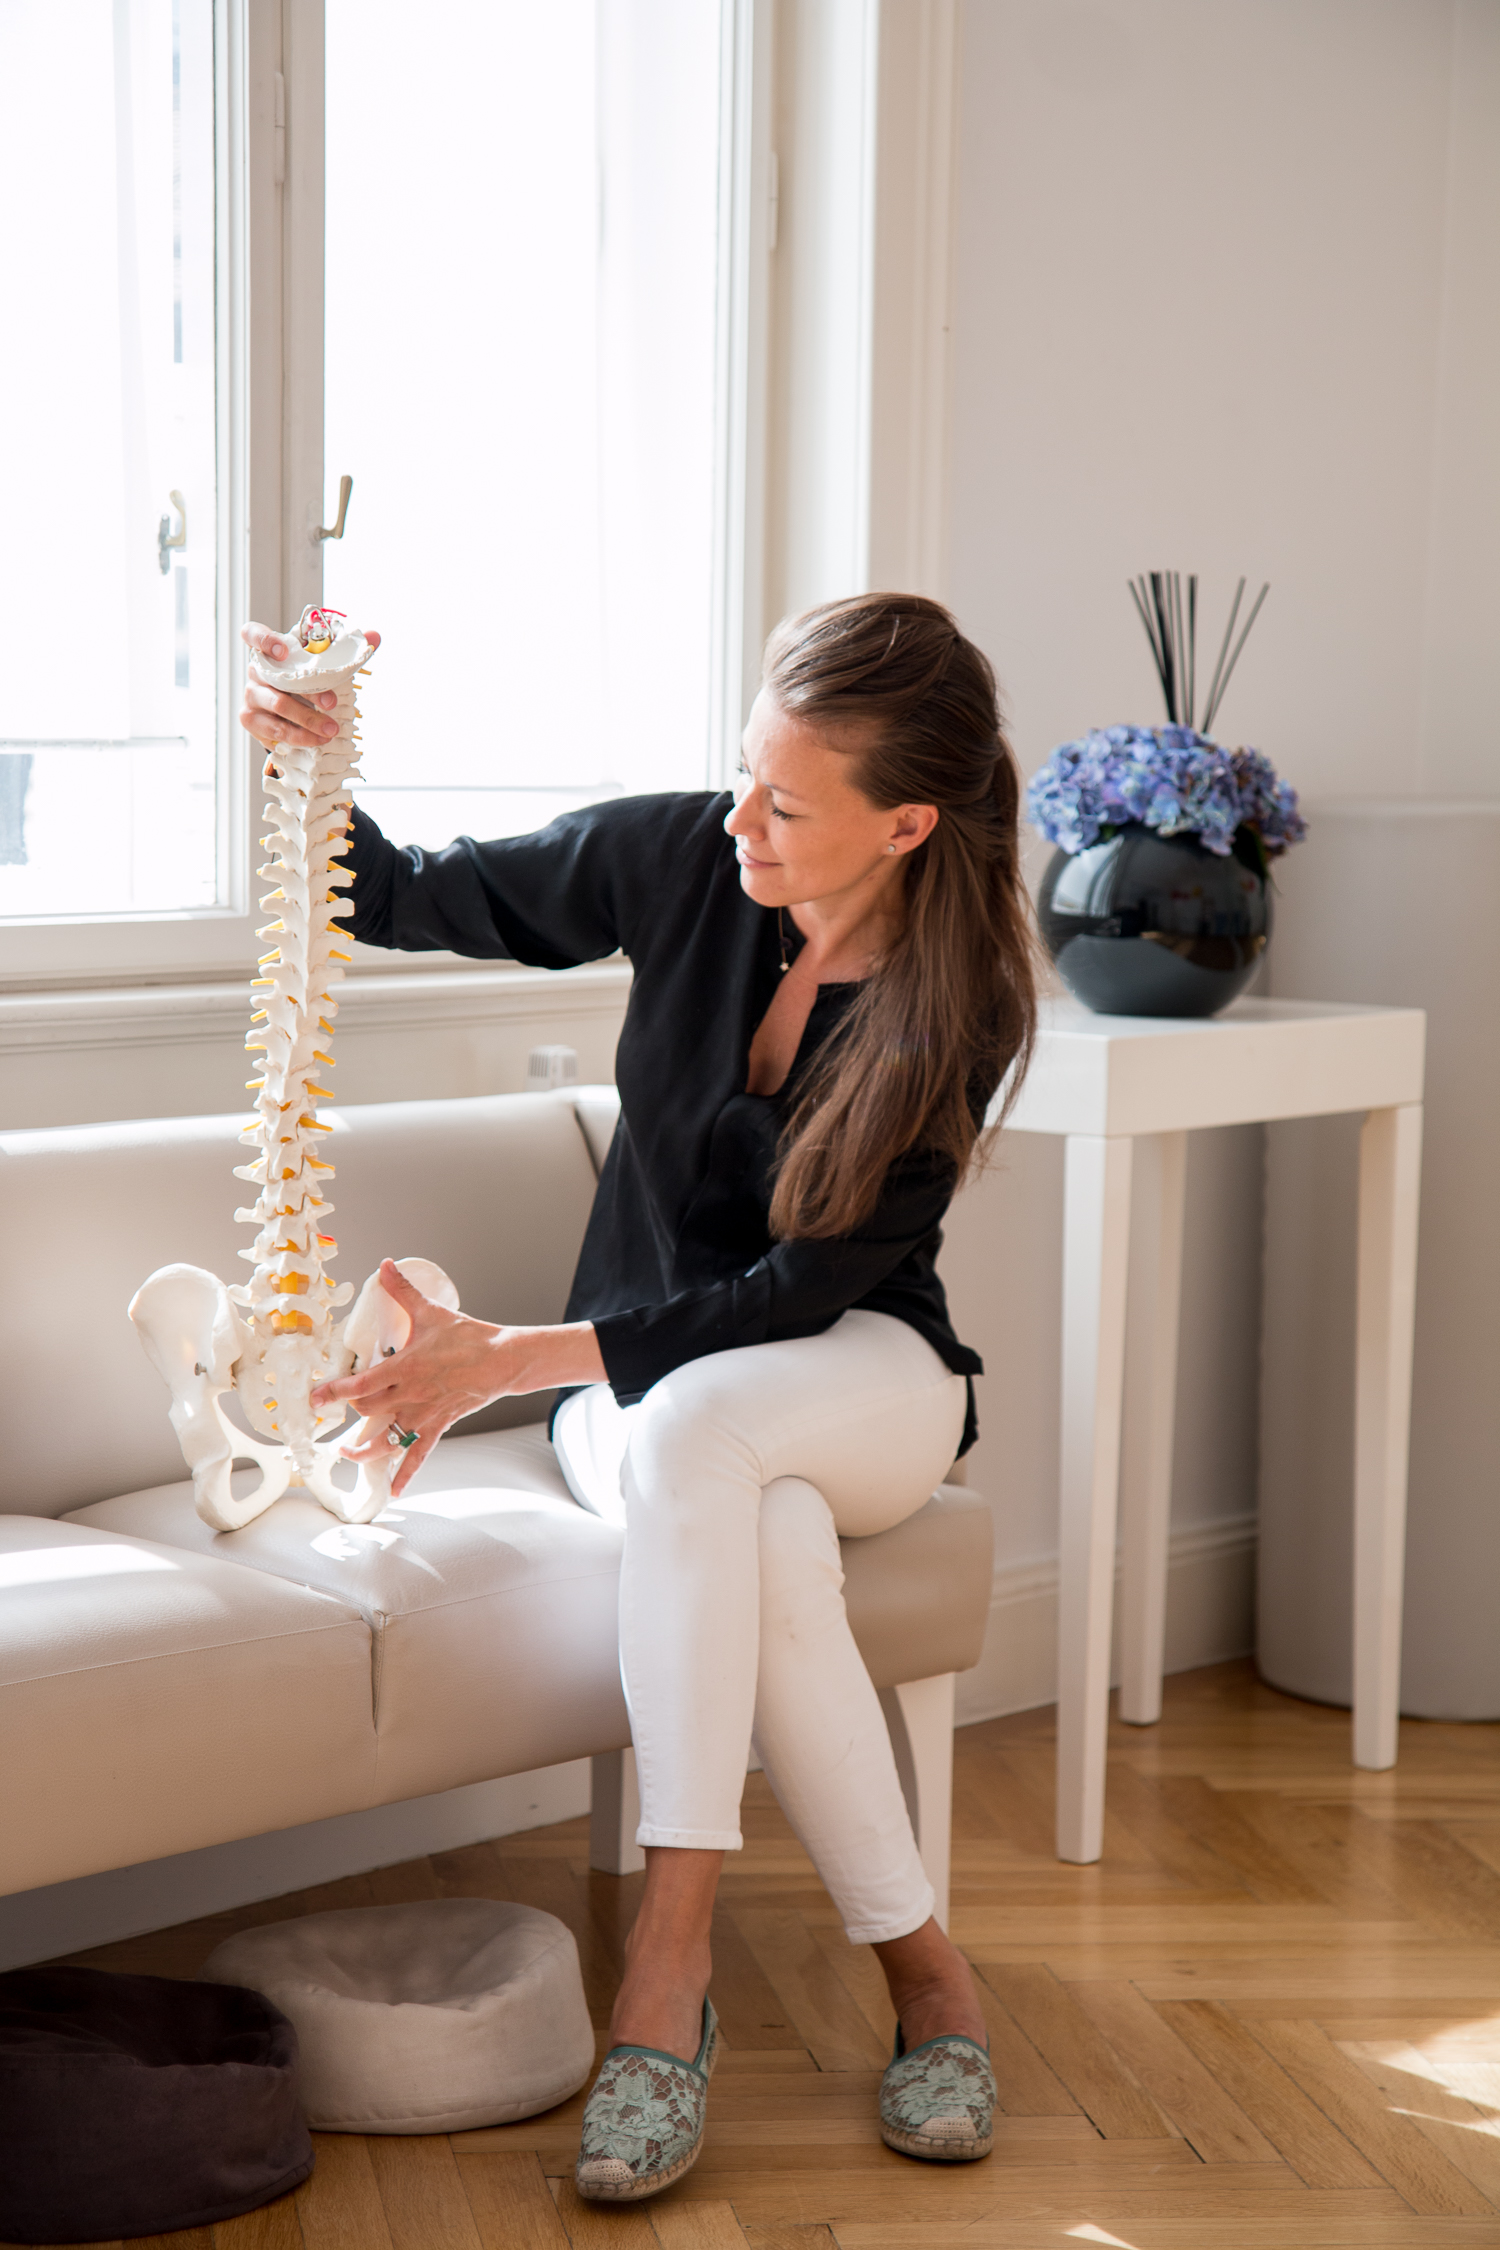 Job Report: Michaela Kainz, Wien Praxis Kainz Physiotherapie Prävention Beratung | Love Daily Dose